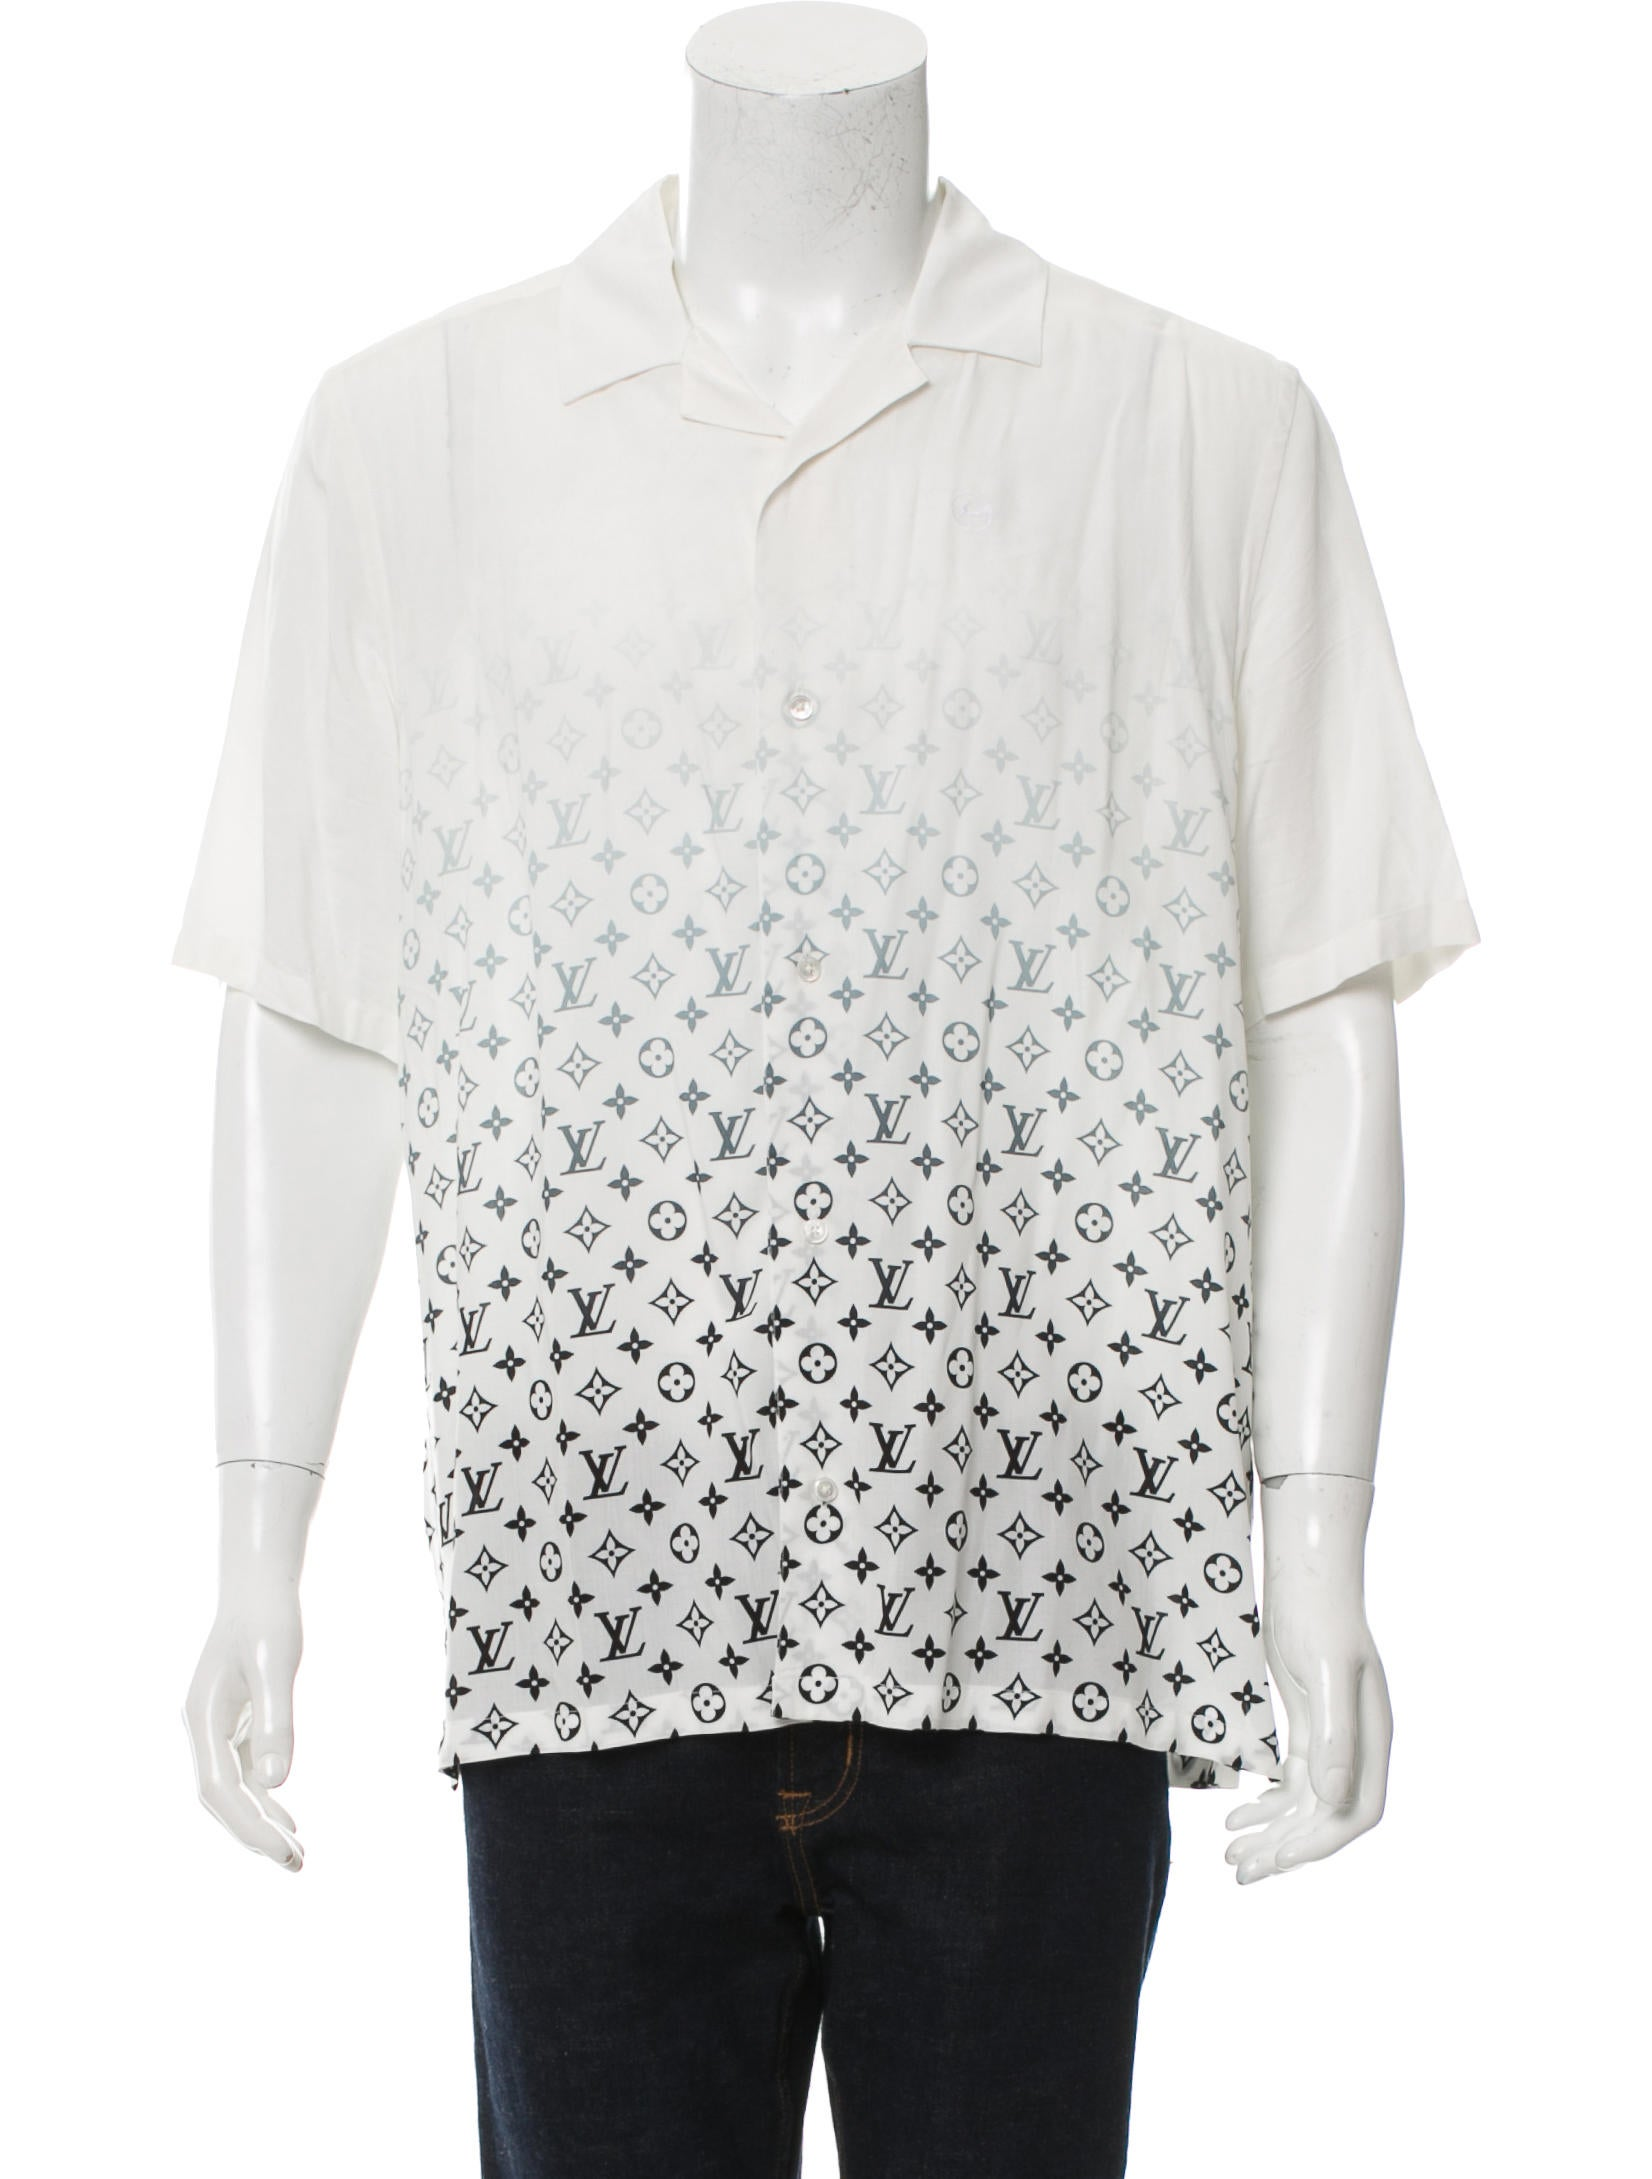 Louis vuitton monogram button up shirt clothing for Initials on dress shirts